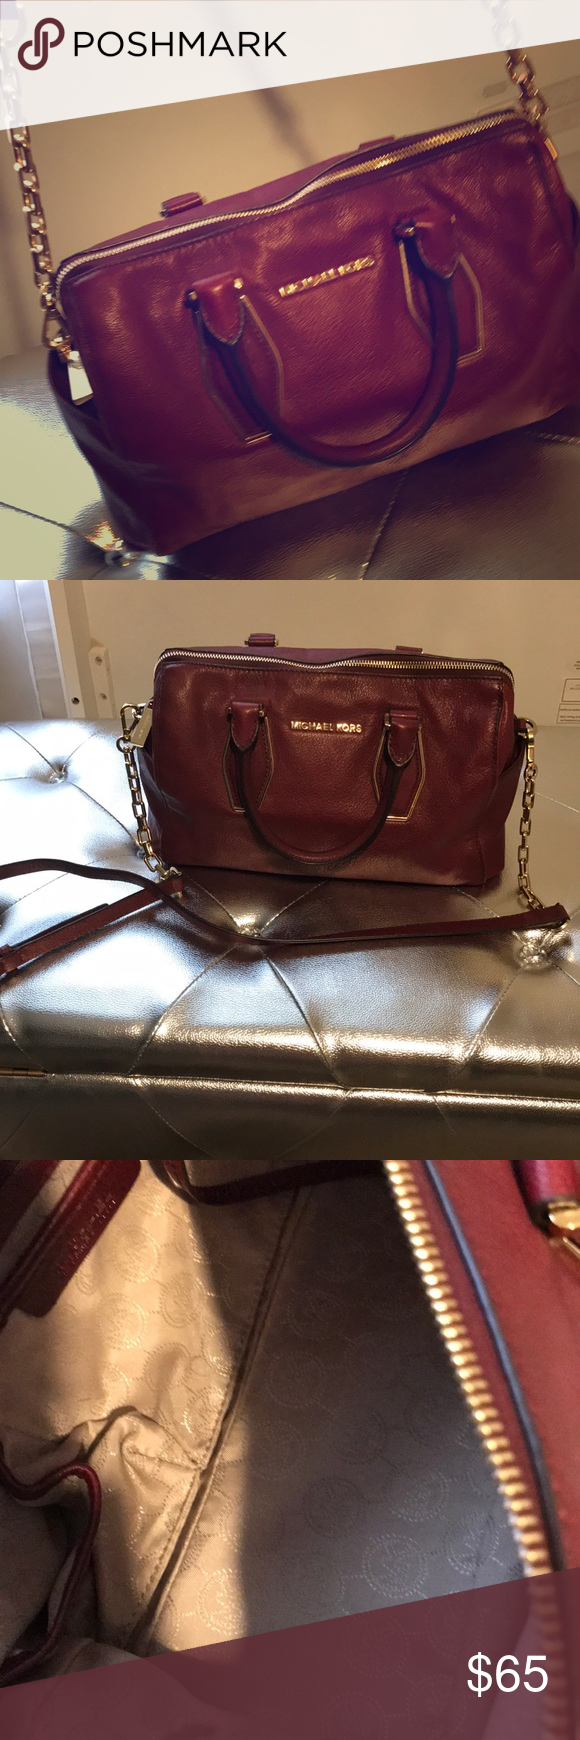 f1f618337b MK burgundy bag. Very clean Burgundy Small MK bag. Very well kept. No  damage to the leather. Small stain inside as shown in picture.